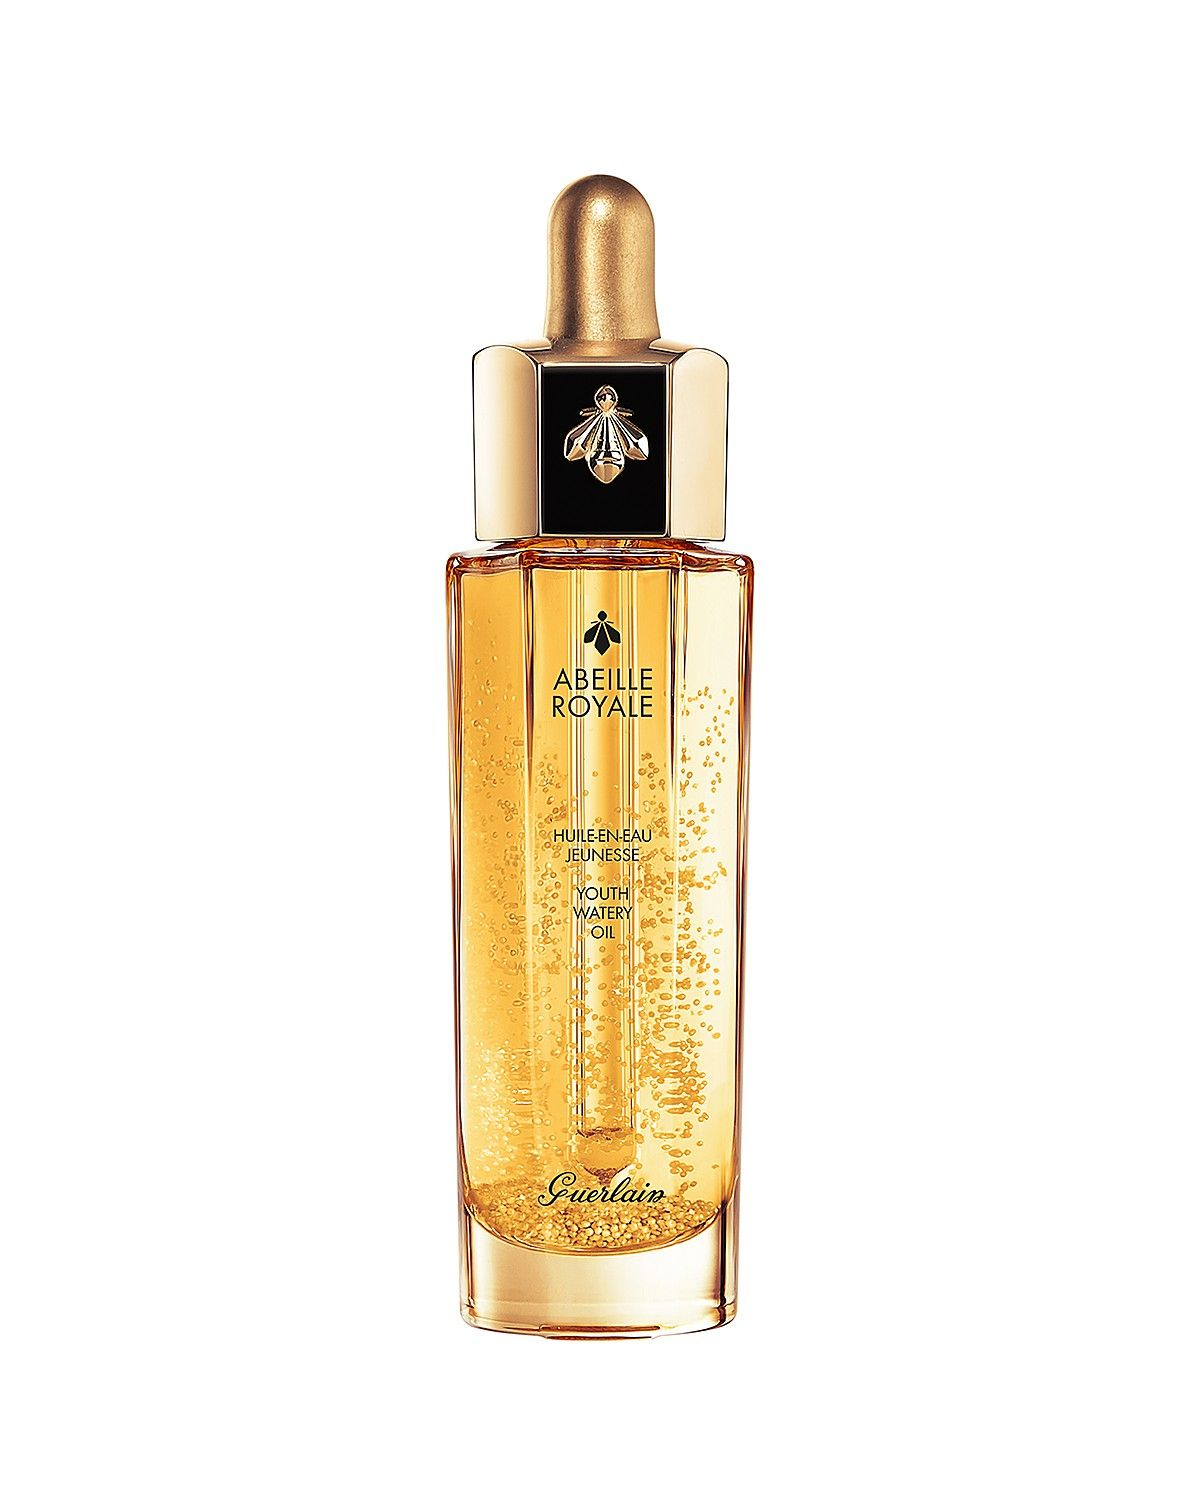 Guerlain Abeille Royale Anti Aging Youth Watery Facial Oil 1 7 Oz Beauty Cosmetics Bloomingdale S Anti Aging Oils Oils Perfume